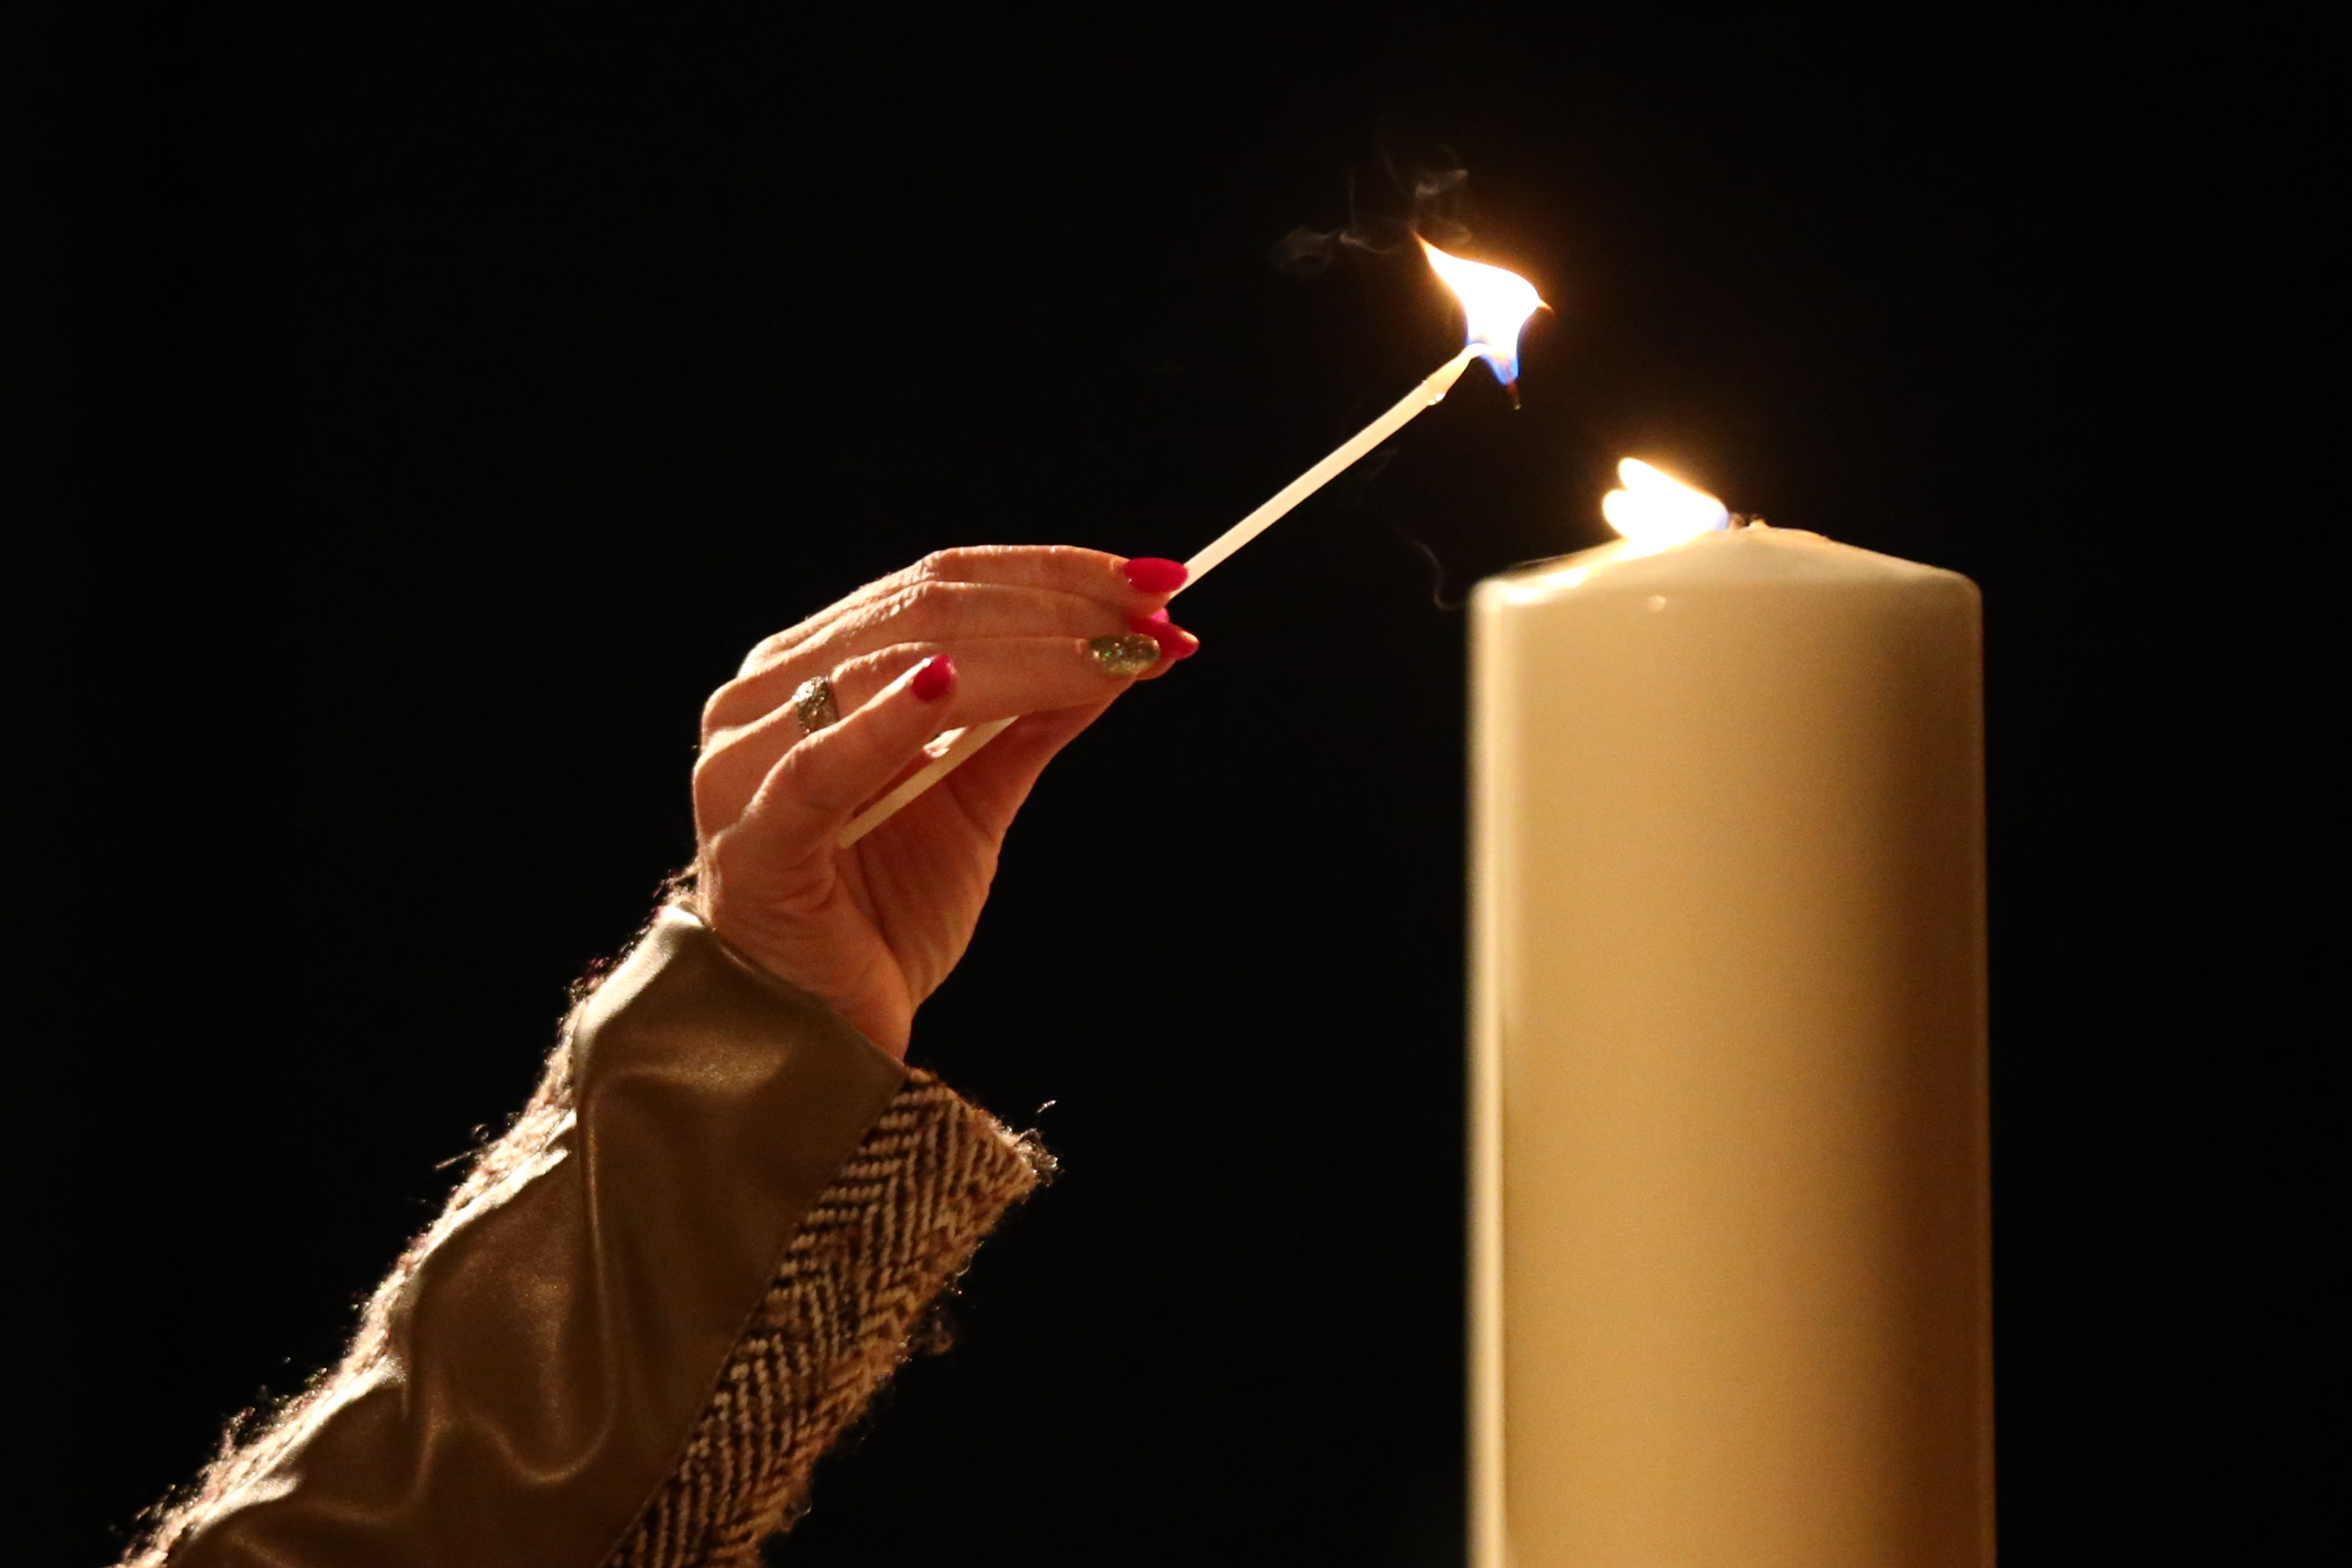 LONDON, ENGLAND - JANUARY 27: A woman lights a candle during an event to commemorate Holocaust Memorial Day at the Imperial War Museum on January 27, 2016 in London, England. Services have been held throughout Britain dedicated to the remembrance of those who suffered in The Holocaust and in subsequent genocides in Cambodia, Rwanda, Bosnia and Darfur. (Photo by Carl Court/Getty Images)